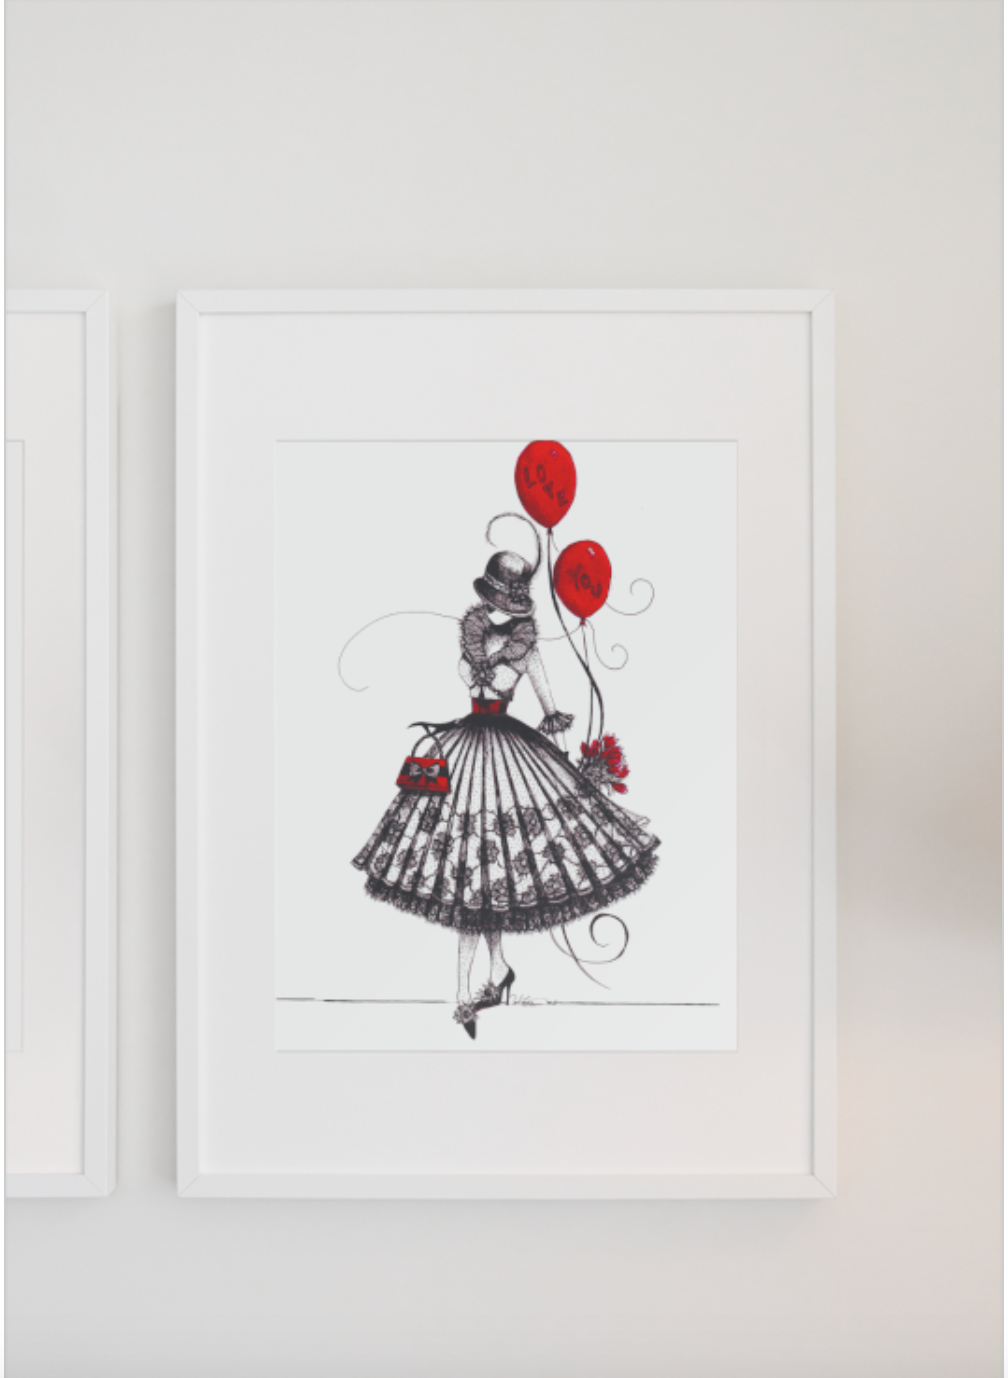 Fancy dressed lady holding red ballon. Wall art for girls room decor